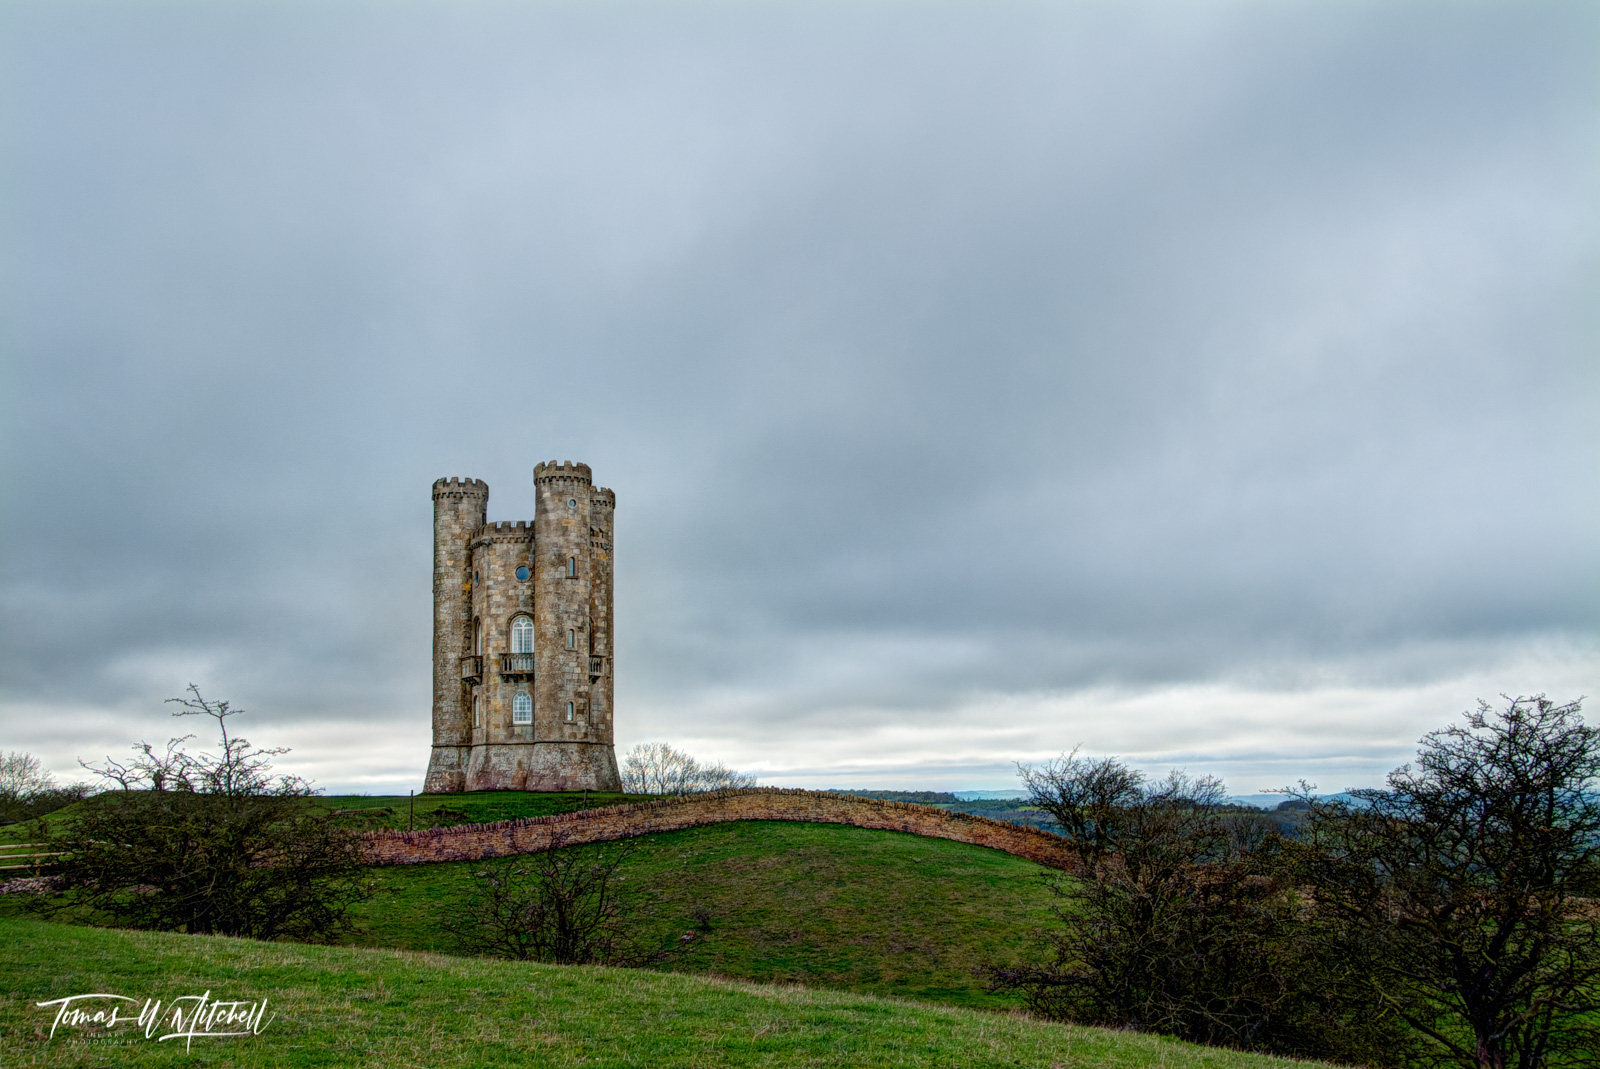 Limited Edition of 50 Museum Grade, Fine Art Prints. Broadway Tower known as the 'Saxon' tower was the brainchild of Capability...